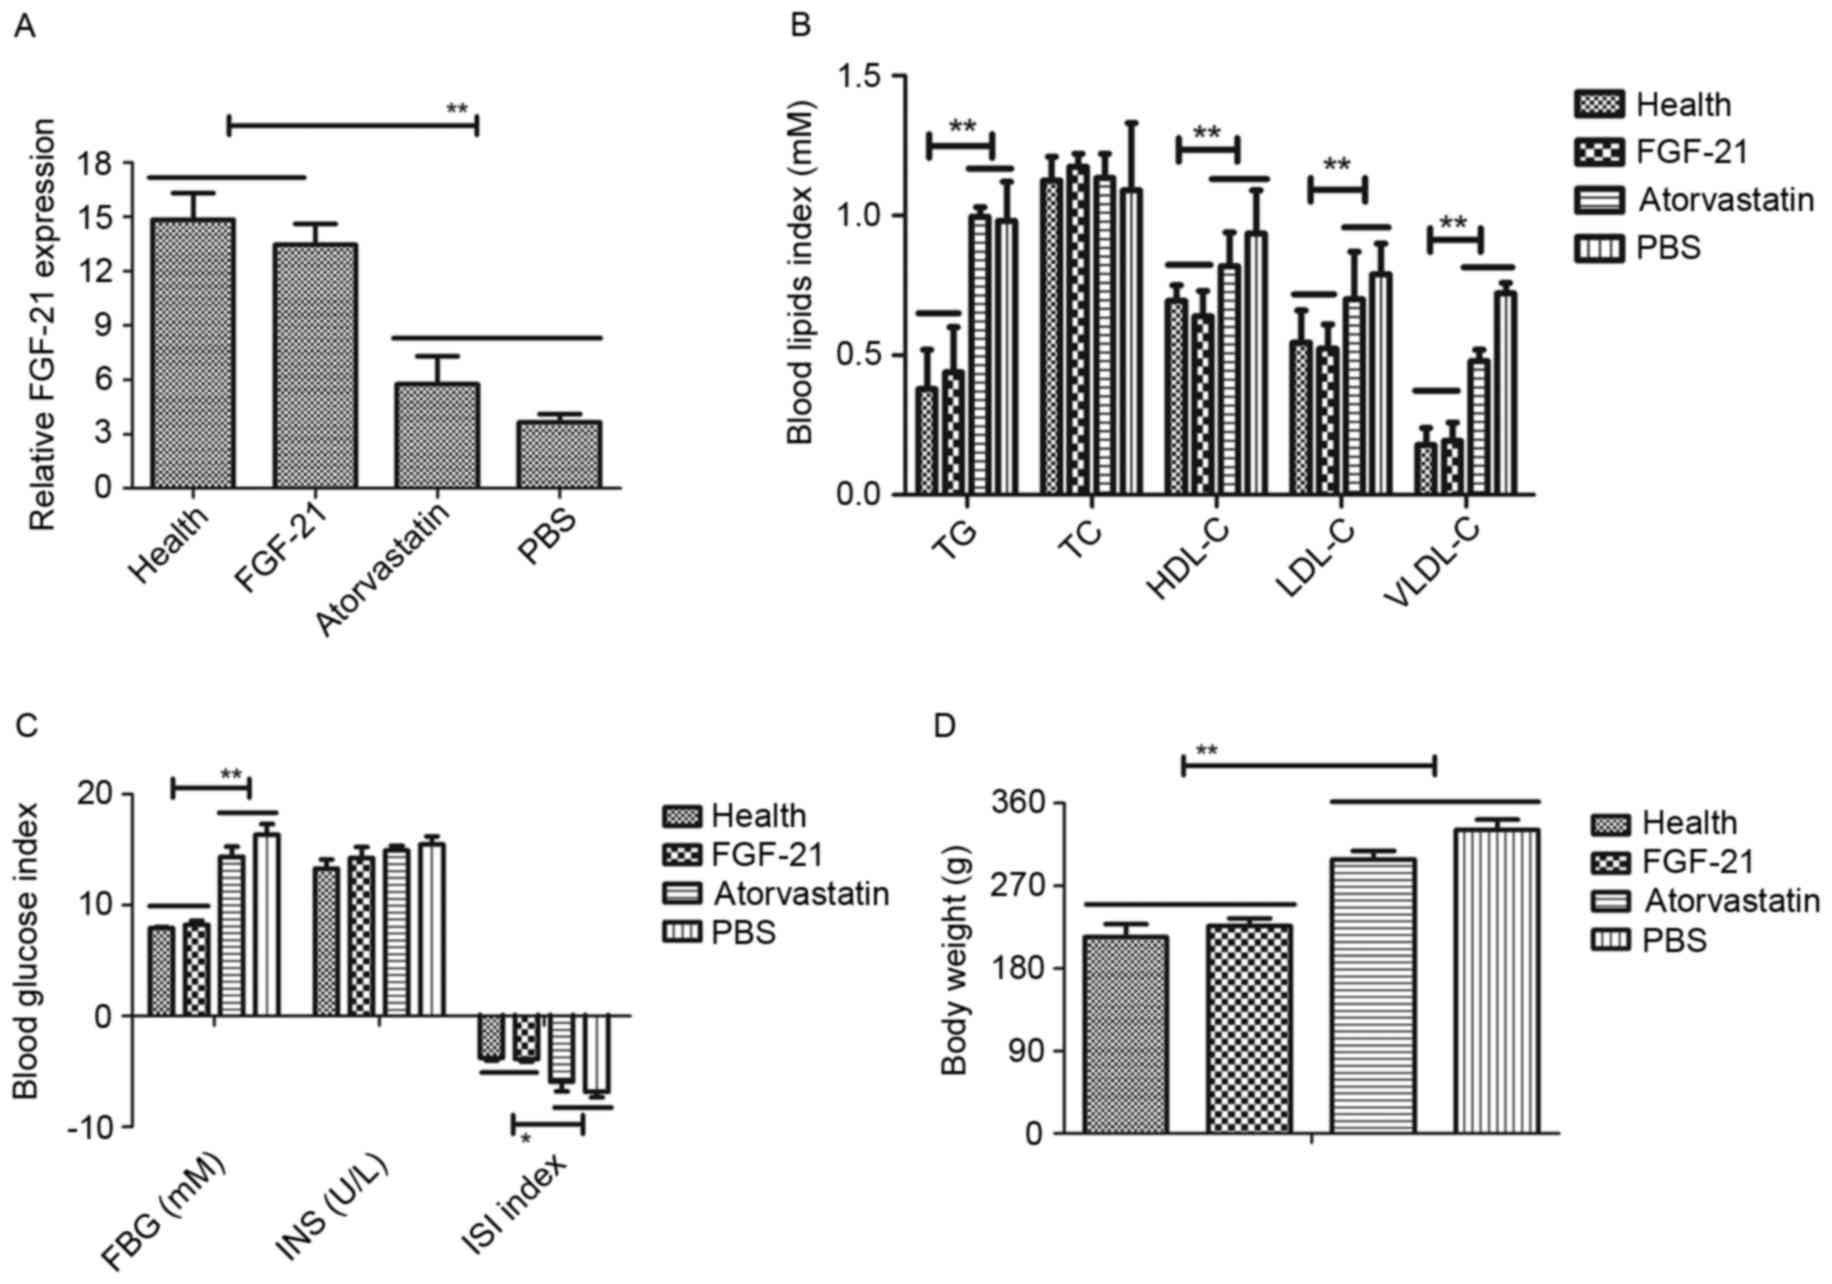 Therapeutic Effects Of Fibroblast Growth Factor21 Against Blood Lancet Isi 100 28 G B Analysis The Efficacy Fgf 21 On Lipids In Rats With Atherosclerosis C Glucose